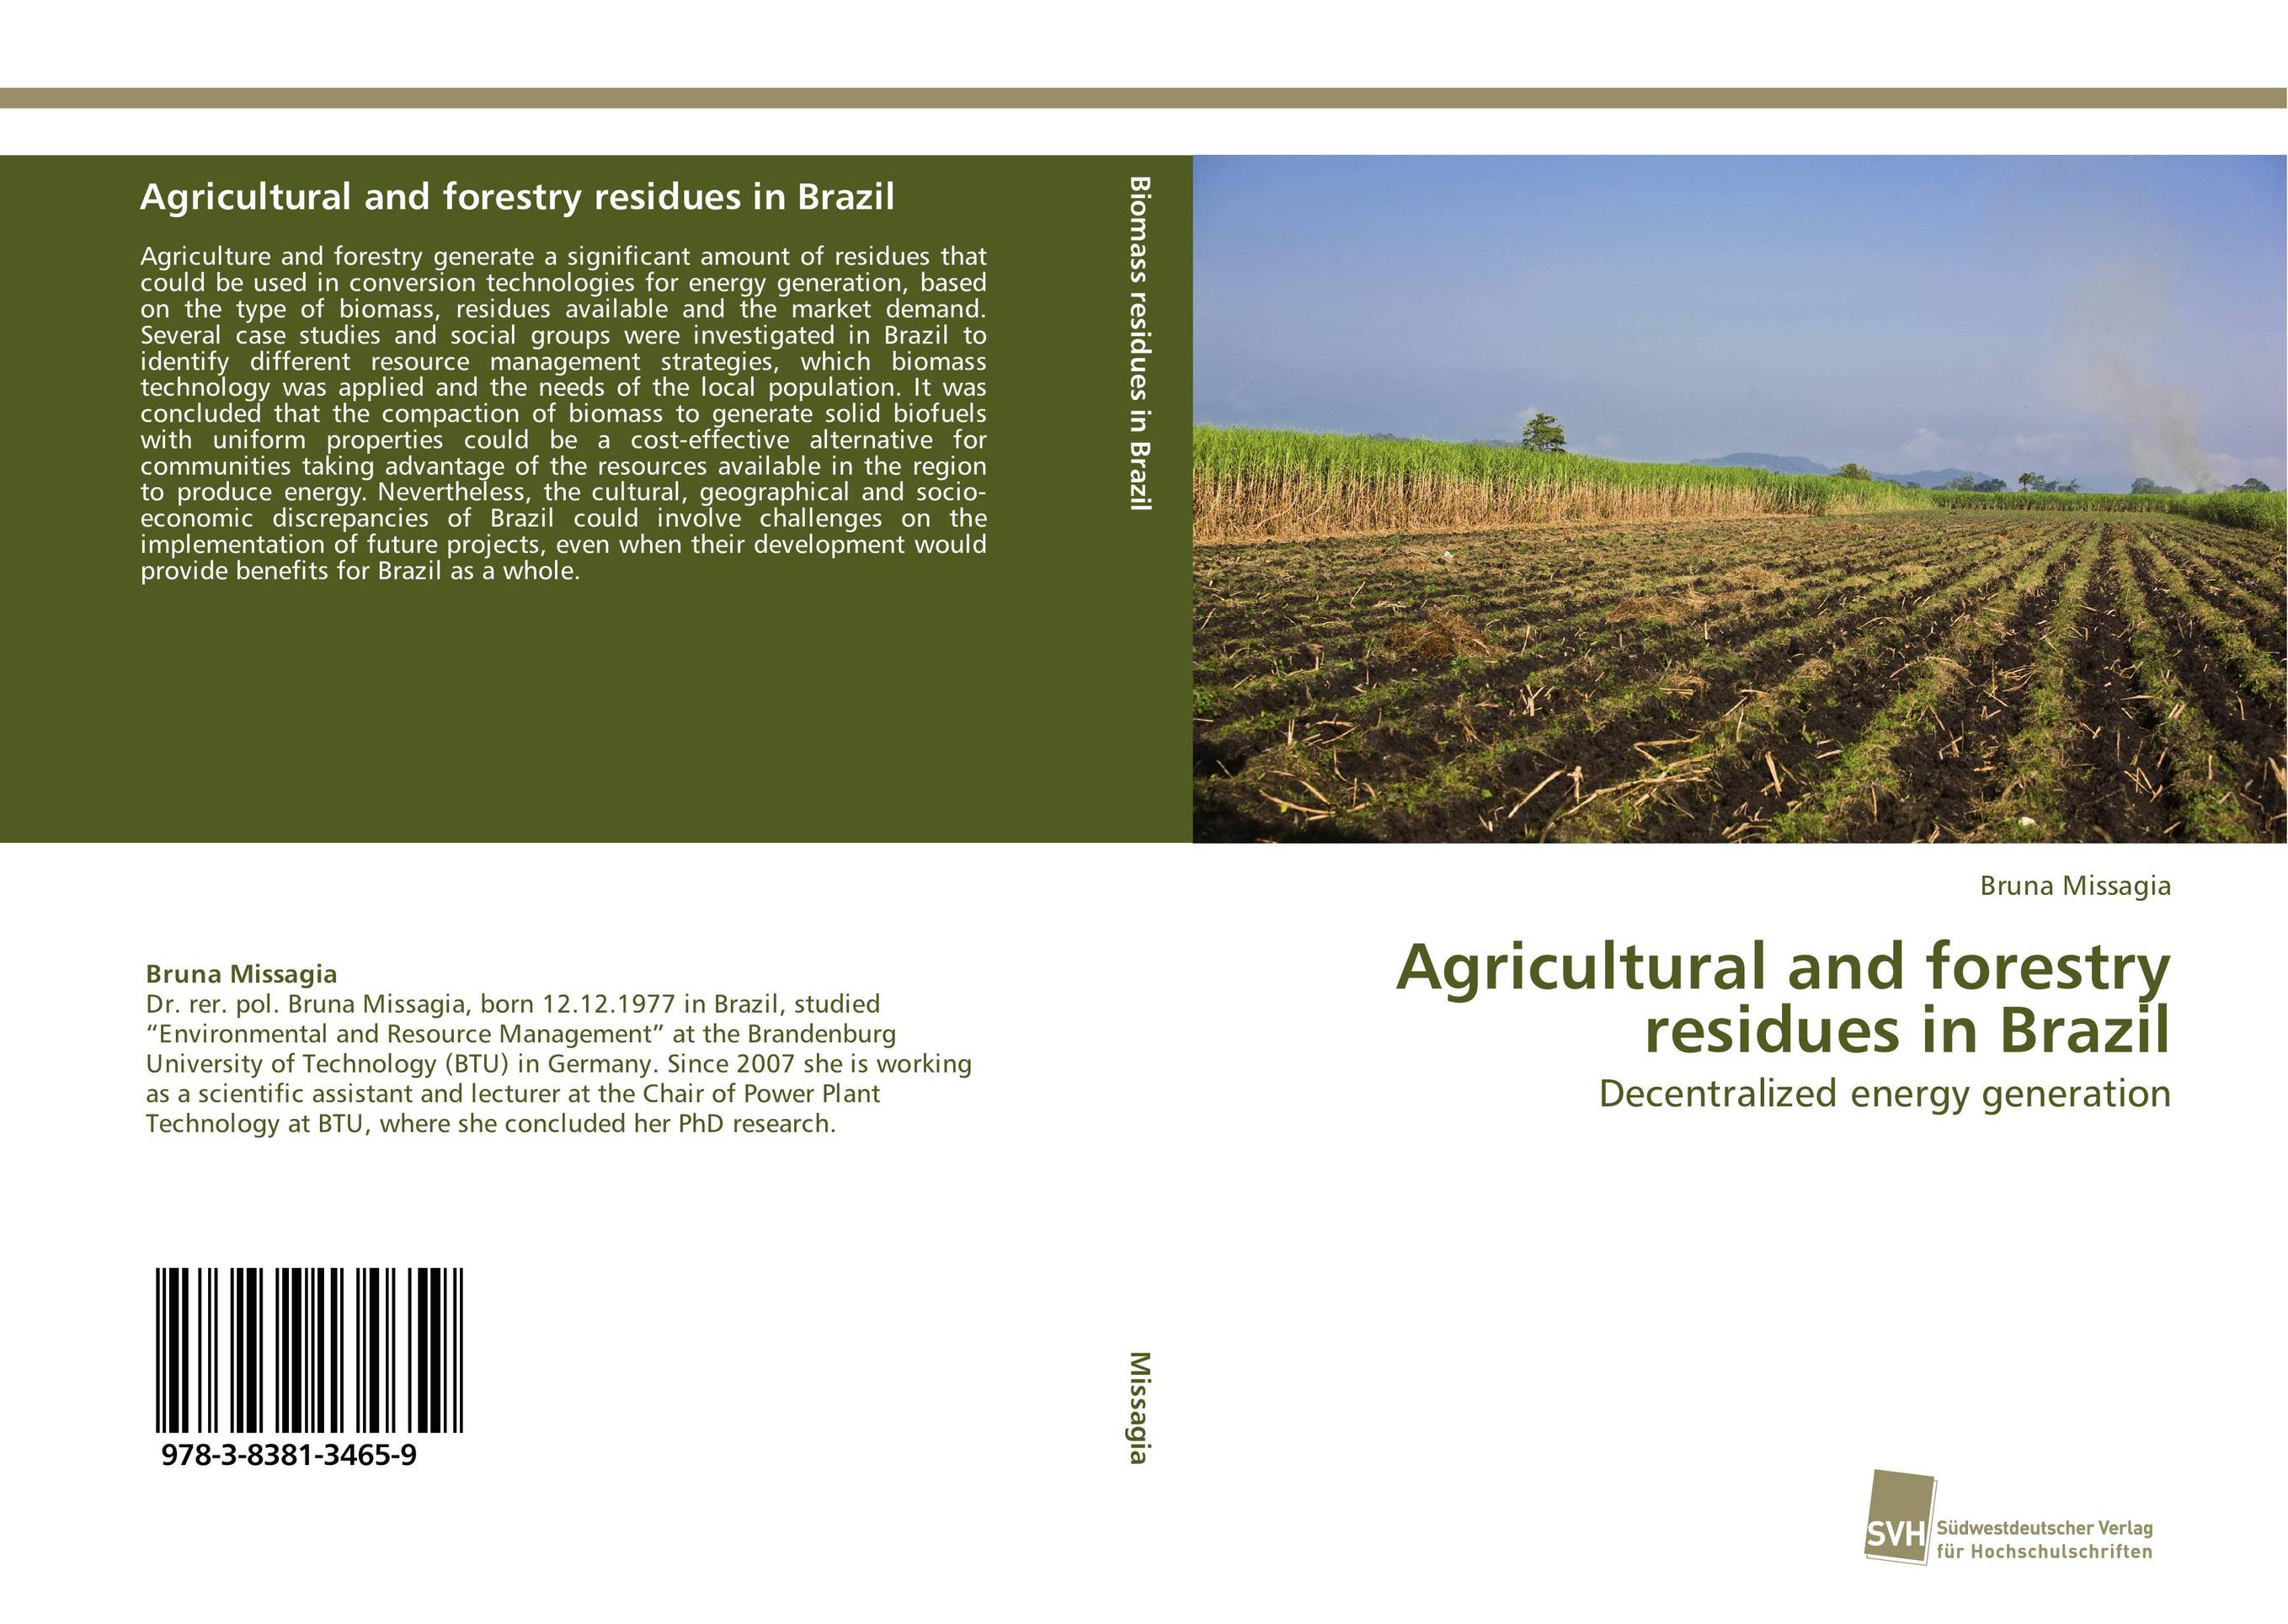 Agricultural and forestry residues in Brazil